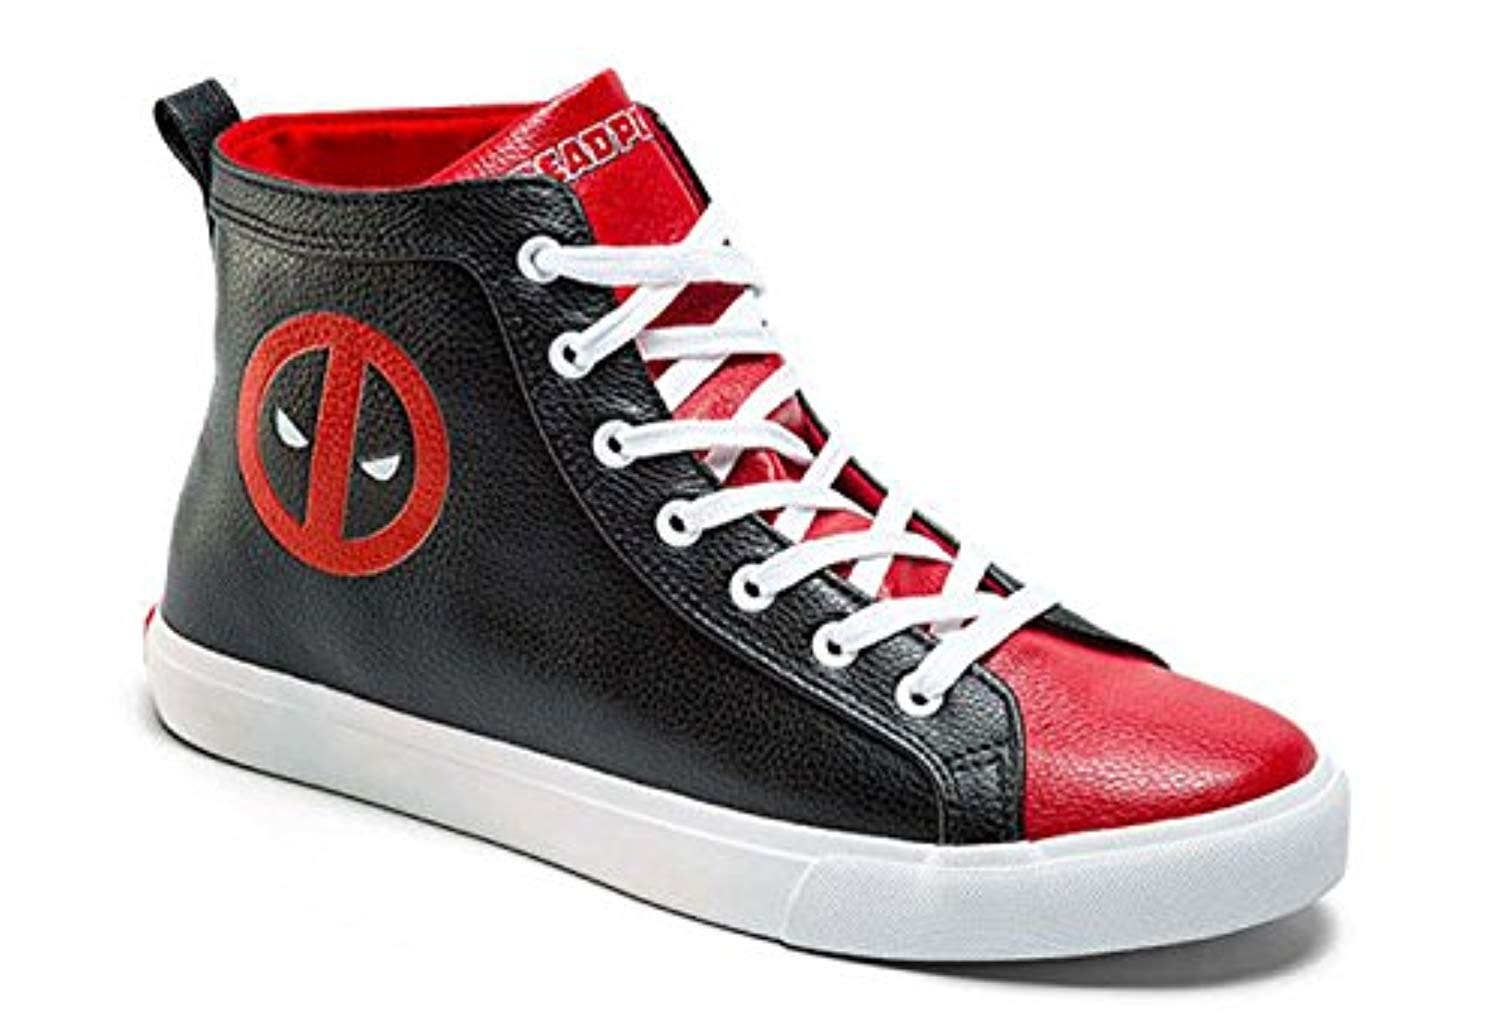 Superhero Deadpool High-Tops Canvas Shoes Adult Ankle Sneakers New v.038